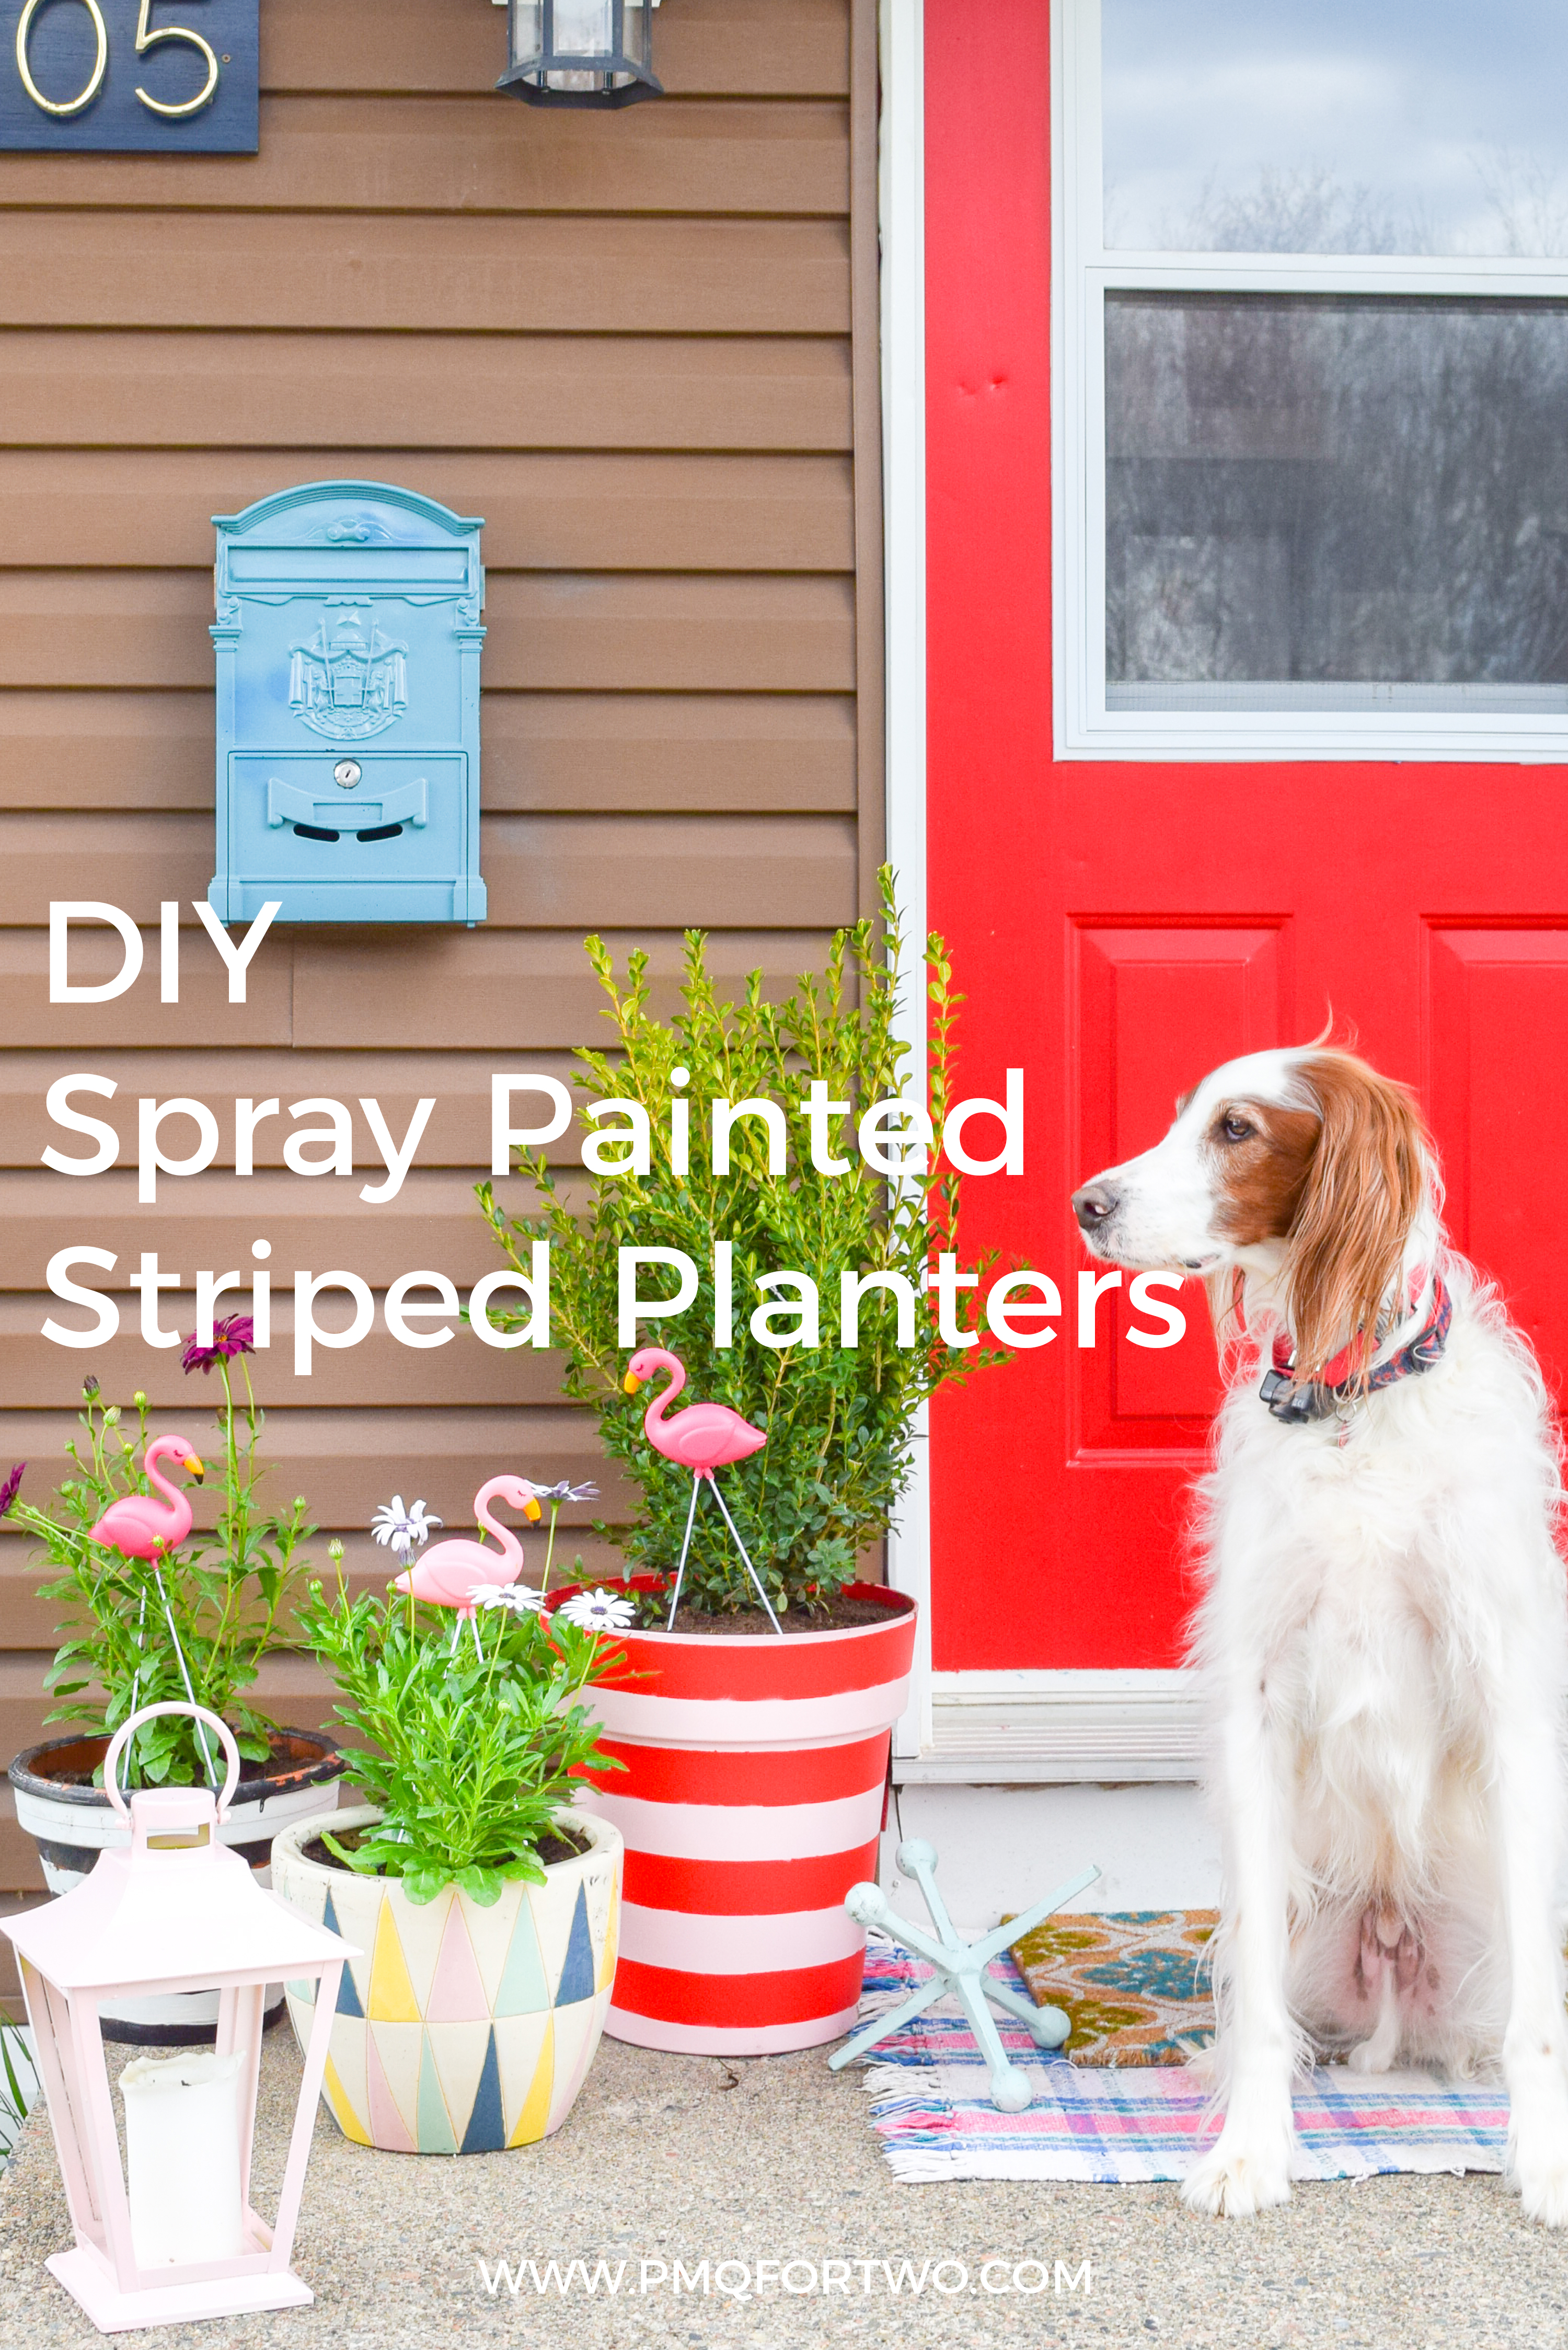 Create the colour coordinated front porch situation of your dreams with DIY spray painted striped planters using the Krylon & Tiffany Pratt colour collection.